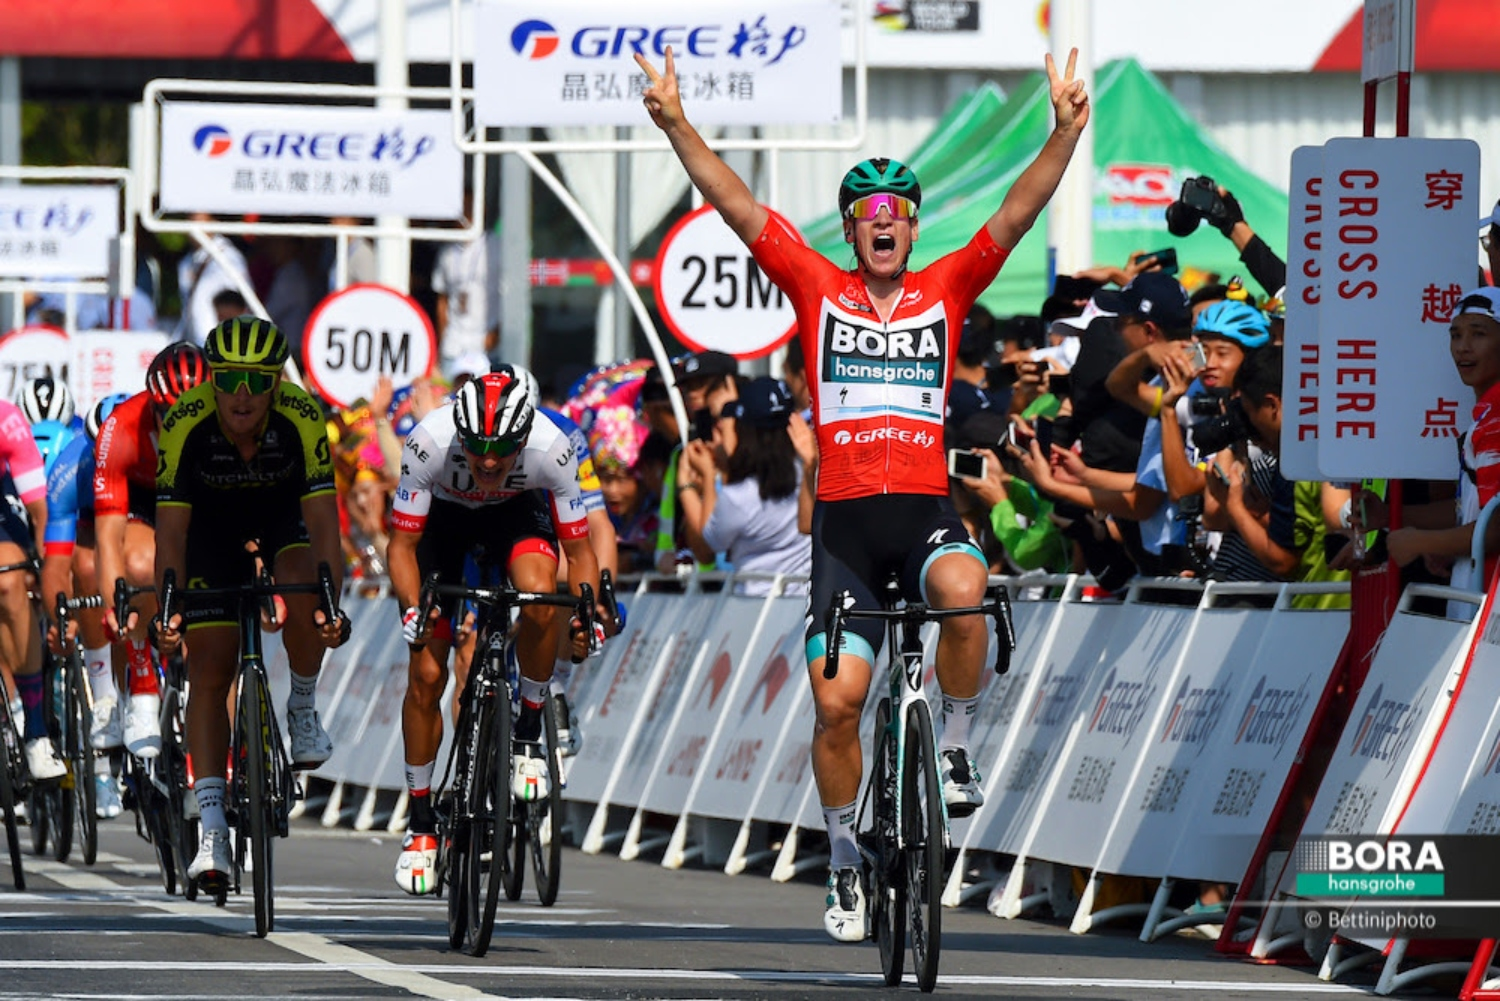 Tour of Guangxi 2019 - 3rd Edition - 3rd stage Nanning - Nanning 143 km - 19/10/2019 - Pascal Ackermann (GER - Bora - Hansgrohe) - photo Dario Belingheri/BettiniPhoto